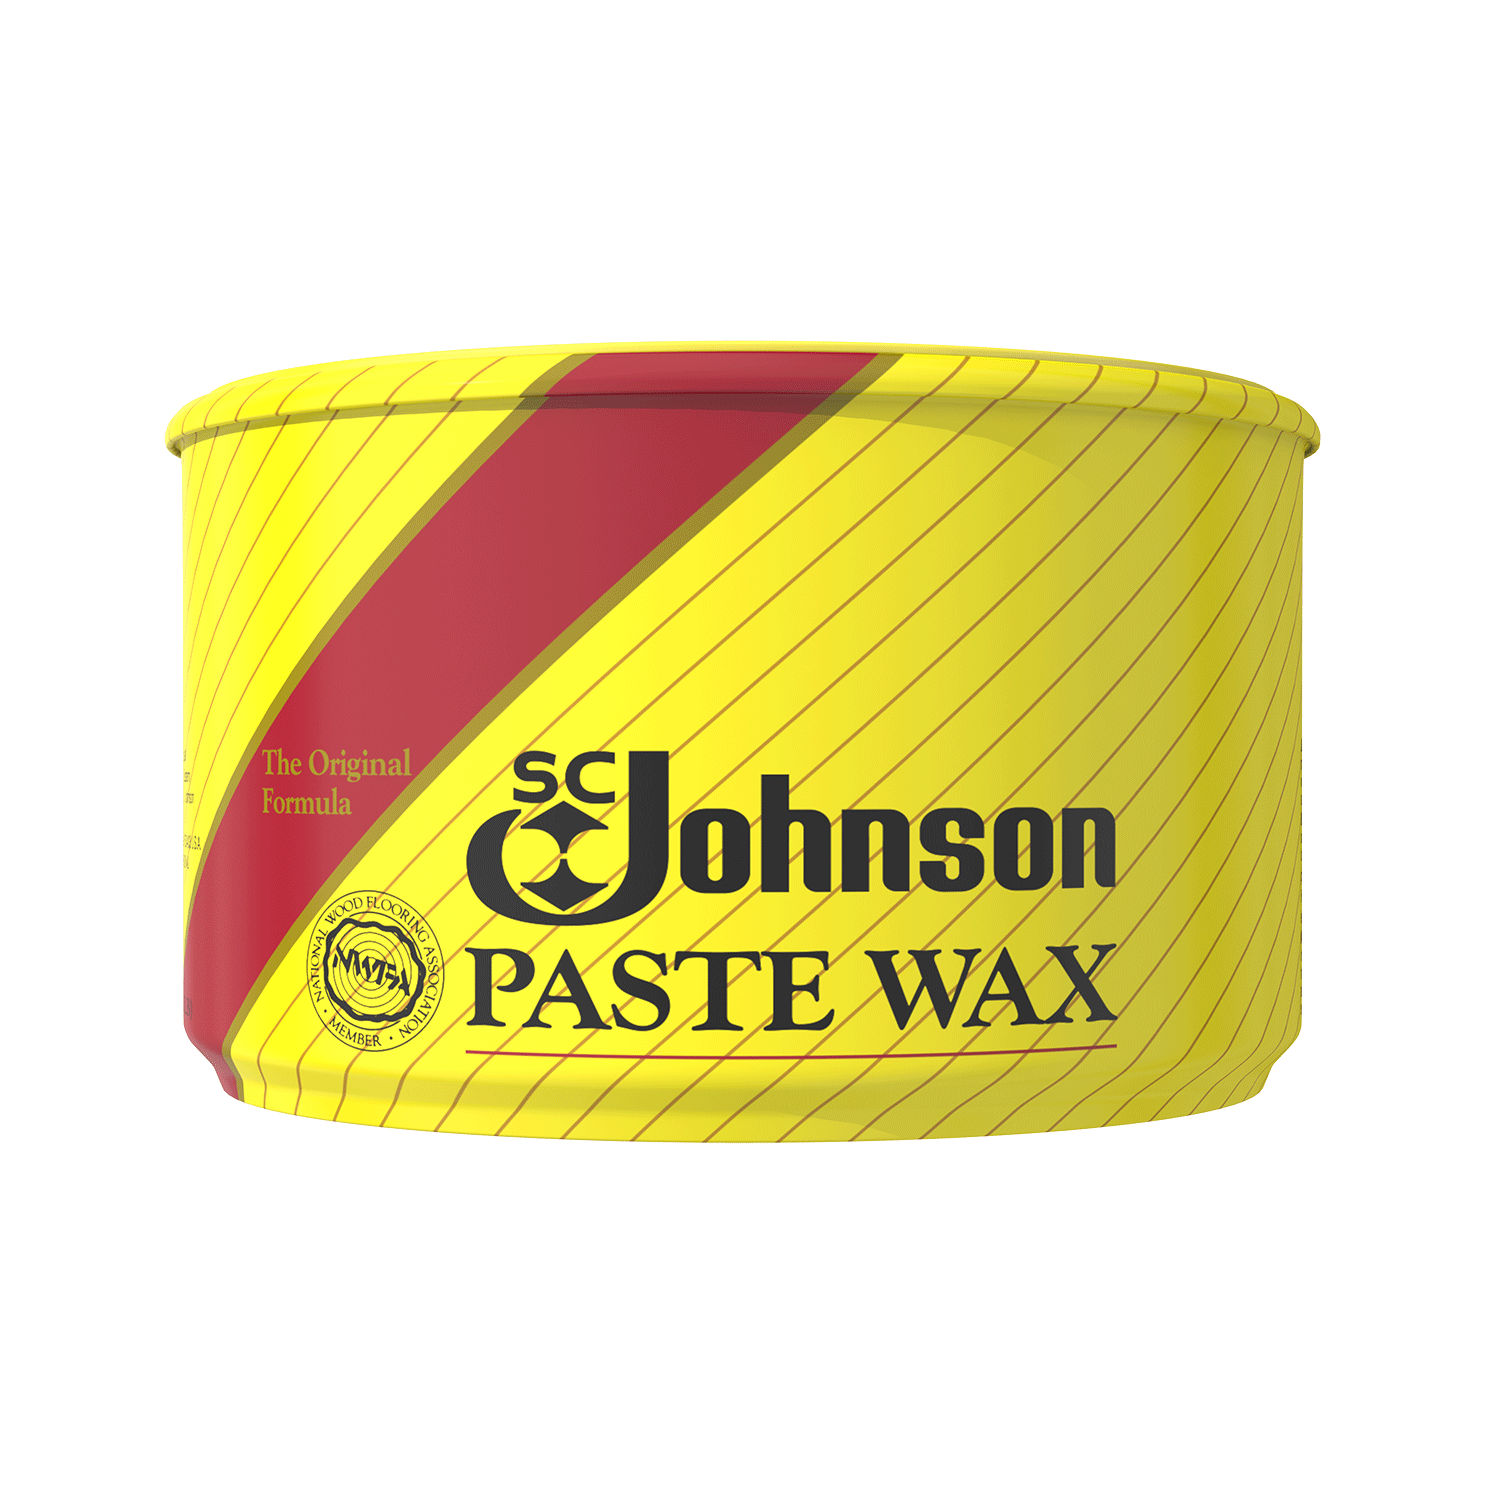 Sc Johnson Paste Wax Sc Johnson Professional